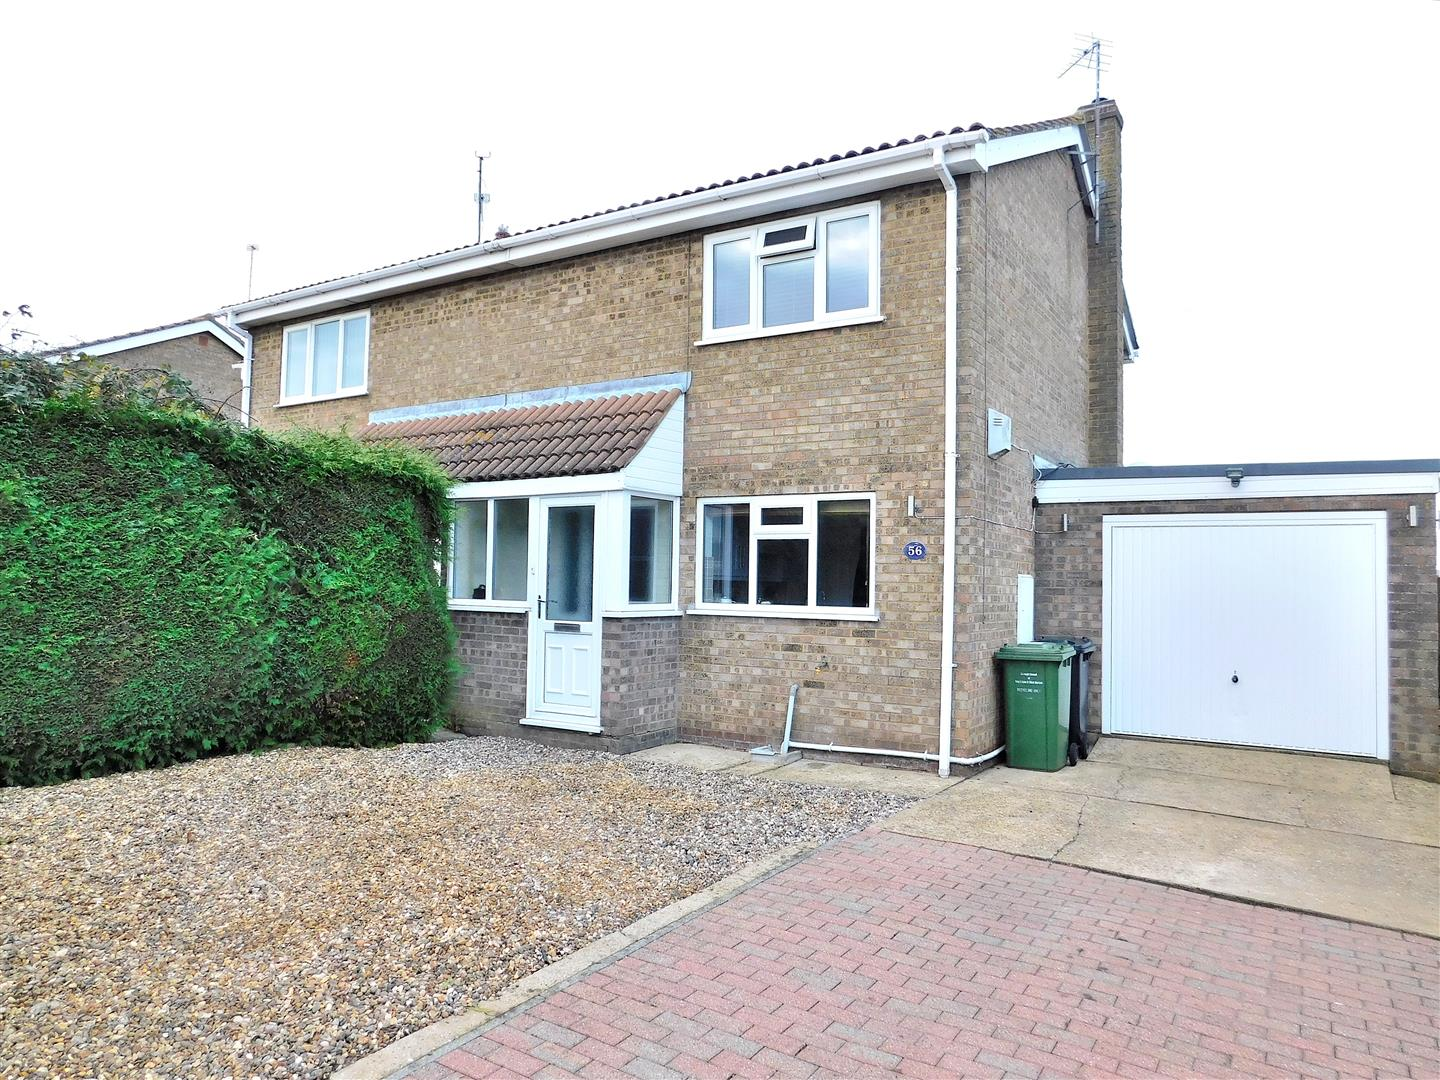 2 bed semi-detached house for sale in King's Lynn, PE34 4BB, PE34